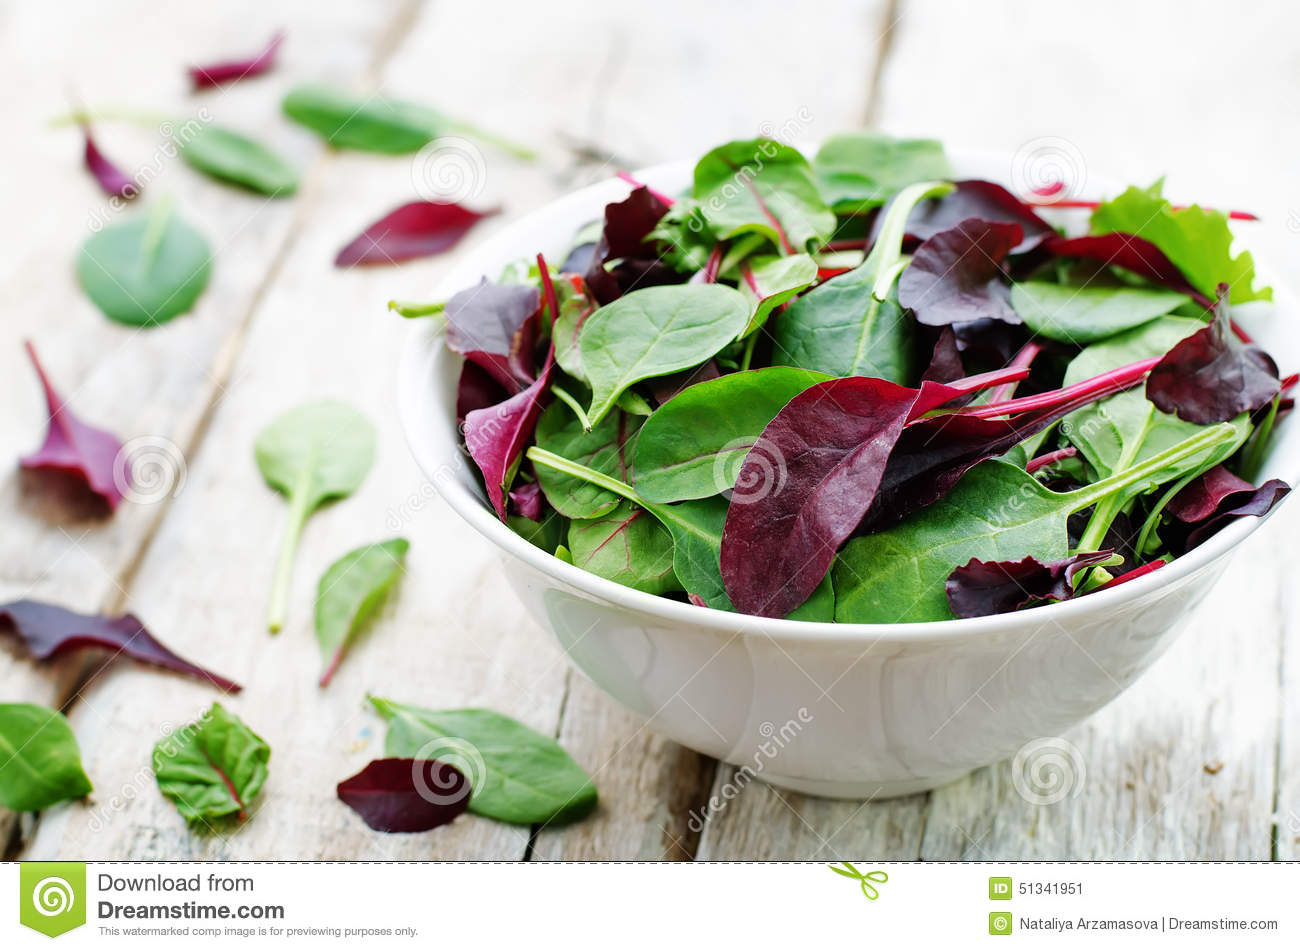 how to prepare chard for salad